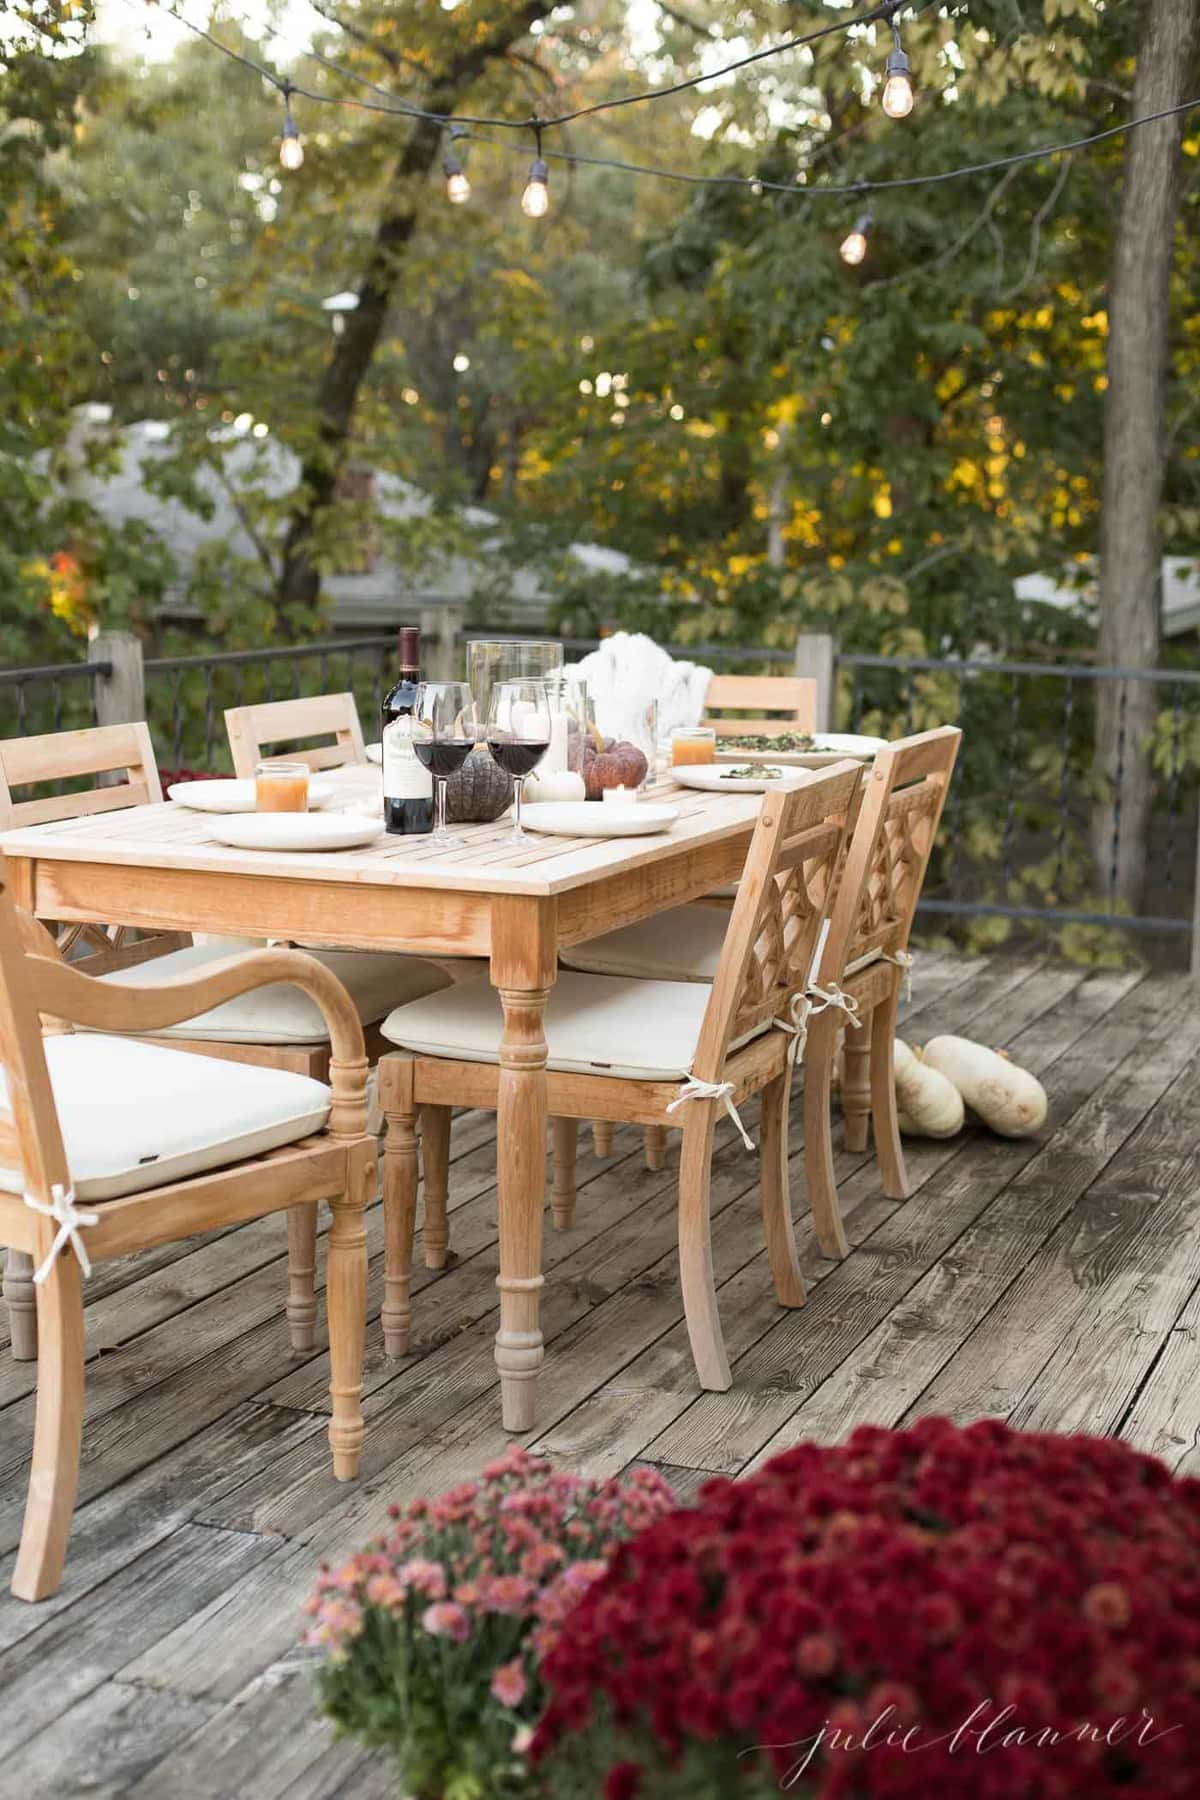 Add lights to a deck or patio to dine al fresco during the fall months